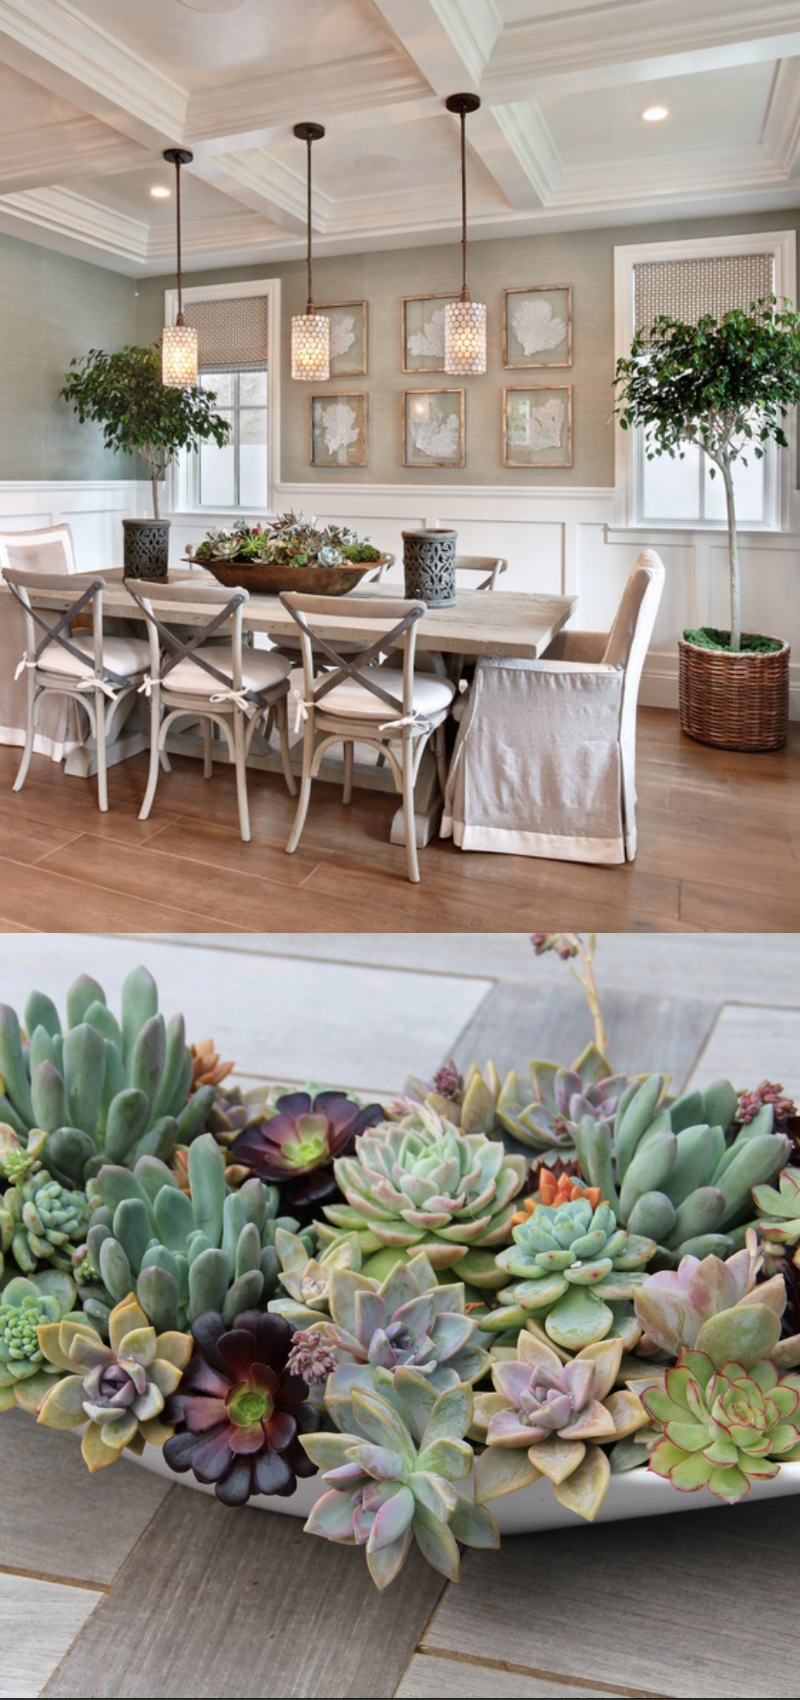 30 Dining Table Centerpiece Ideas A Guide To Decorate Dining Table Must Have Kitchen